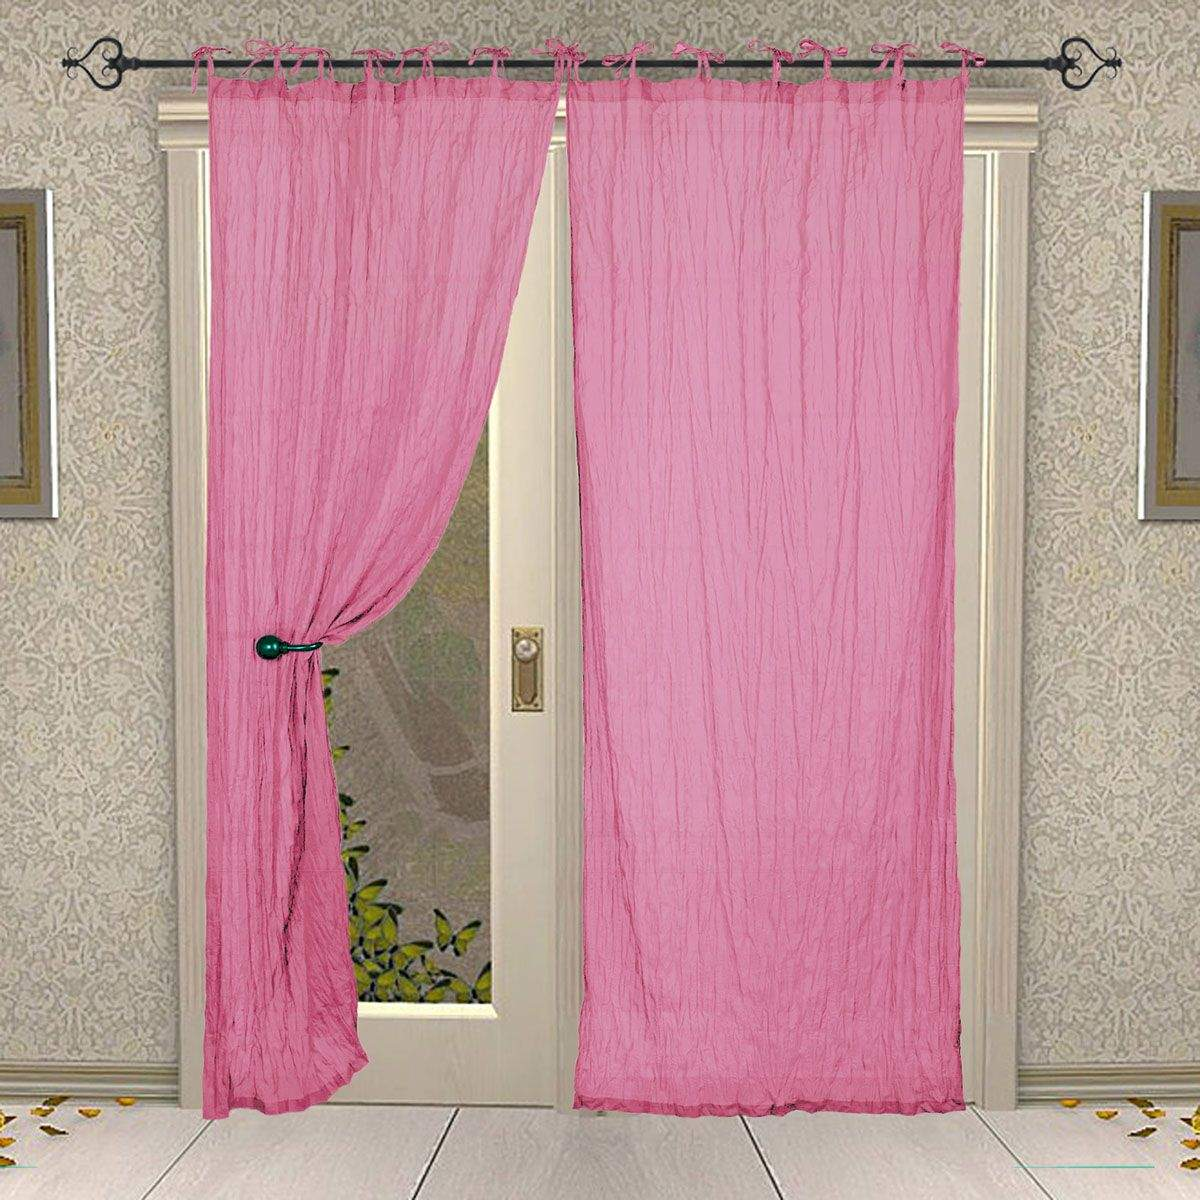 Tie Top Cotton Plain Solid Pink Curtain for Windows and Door